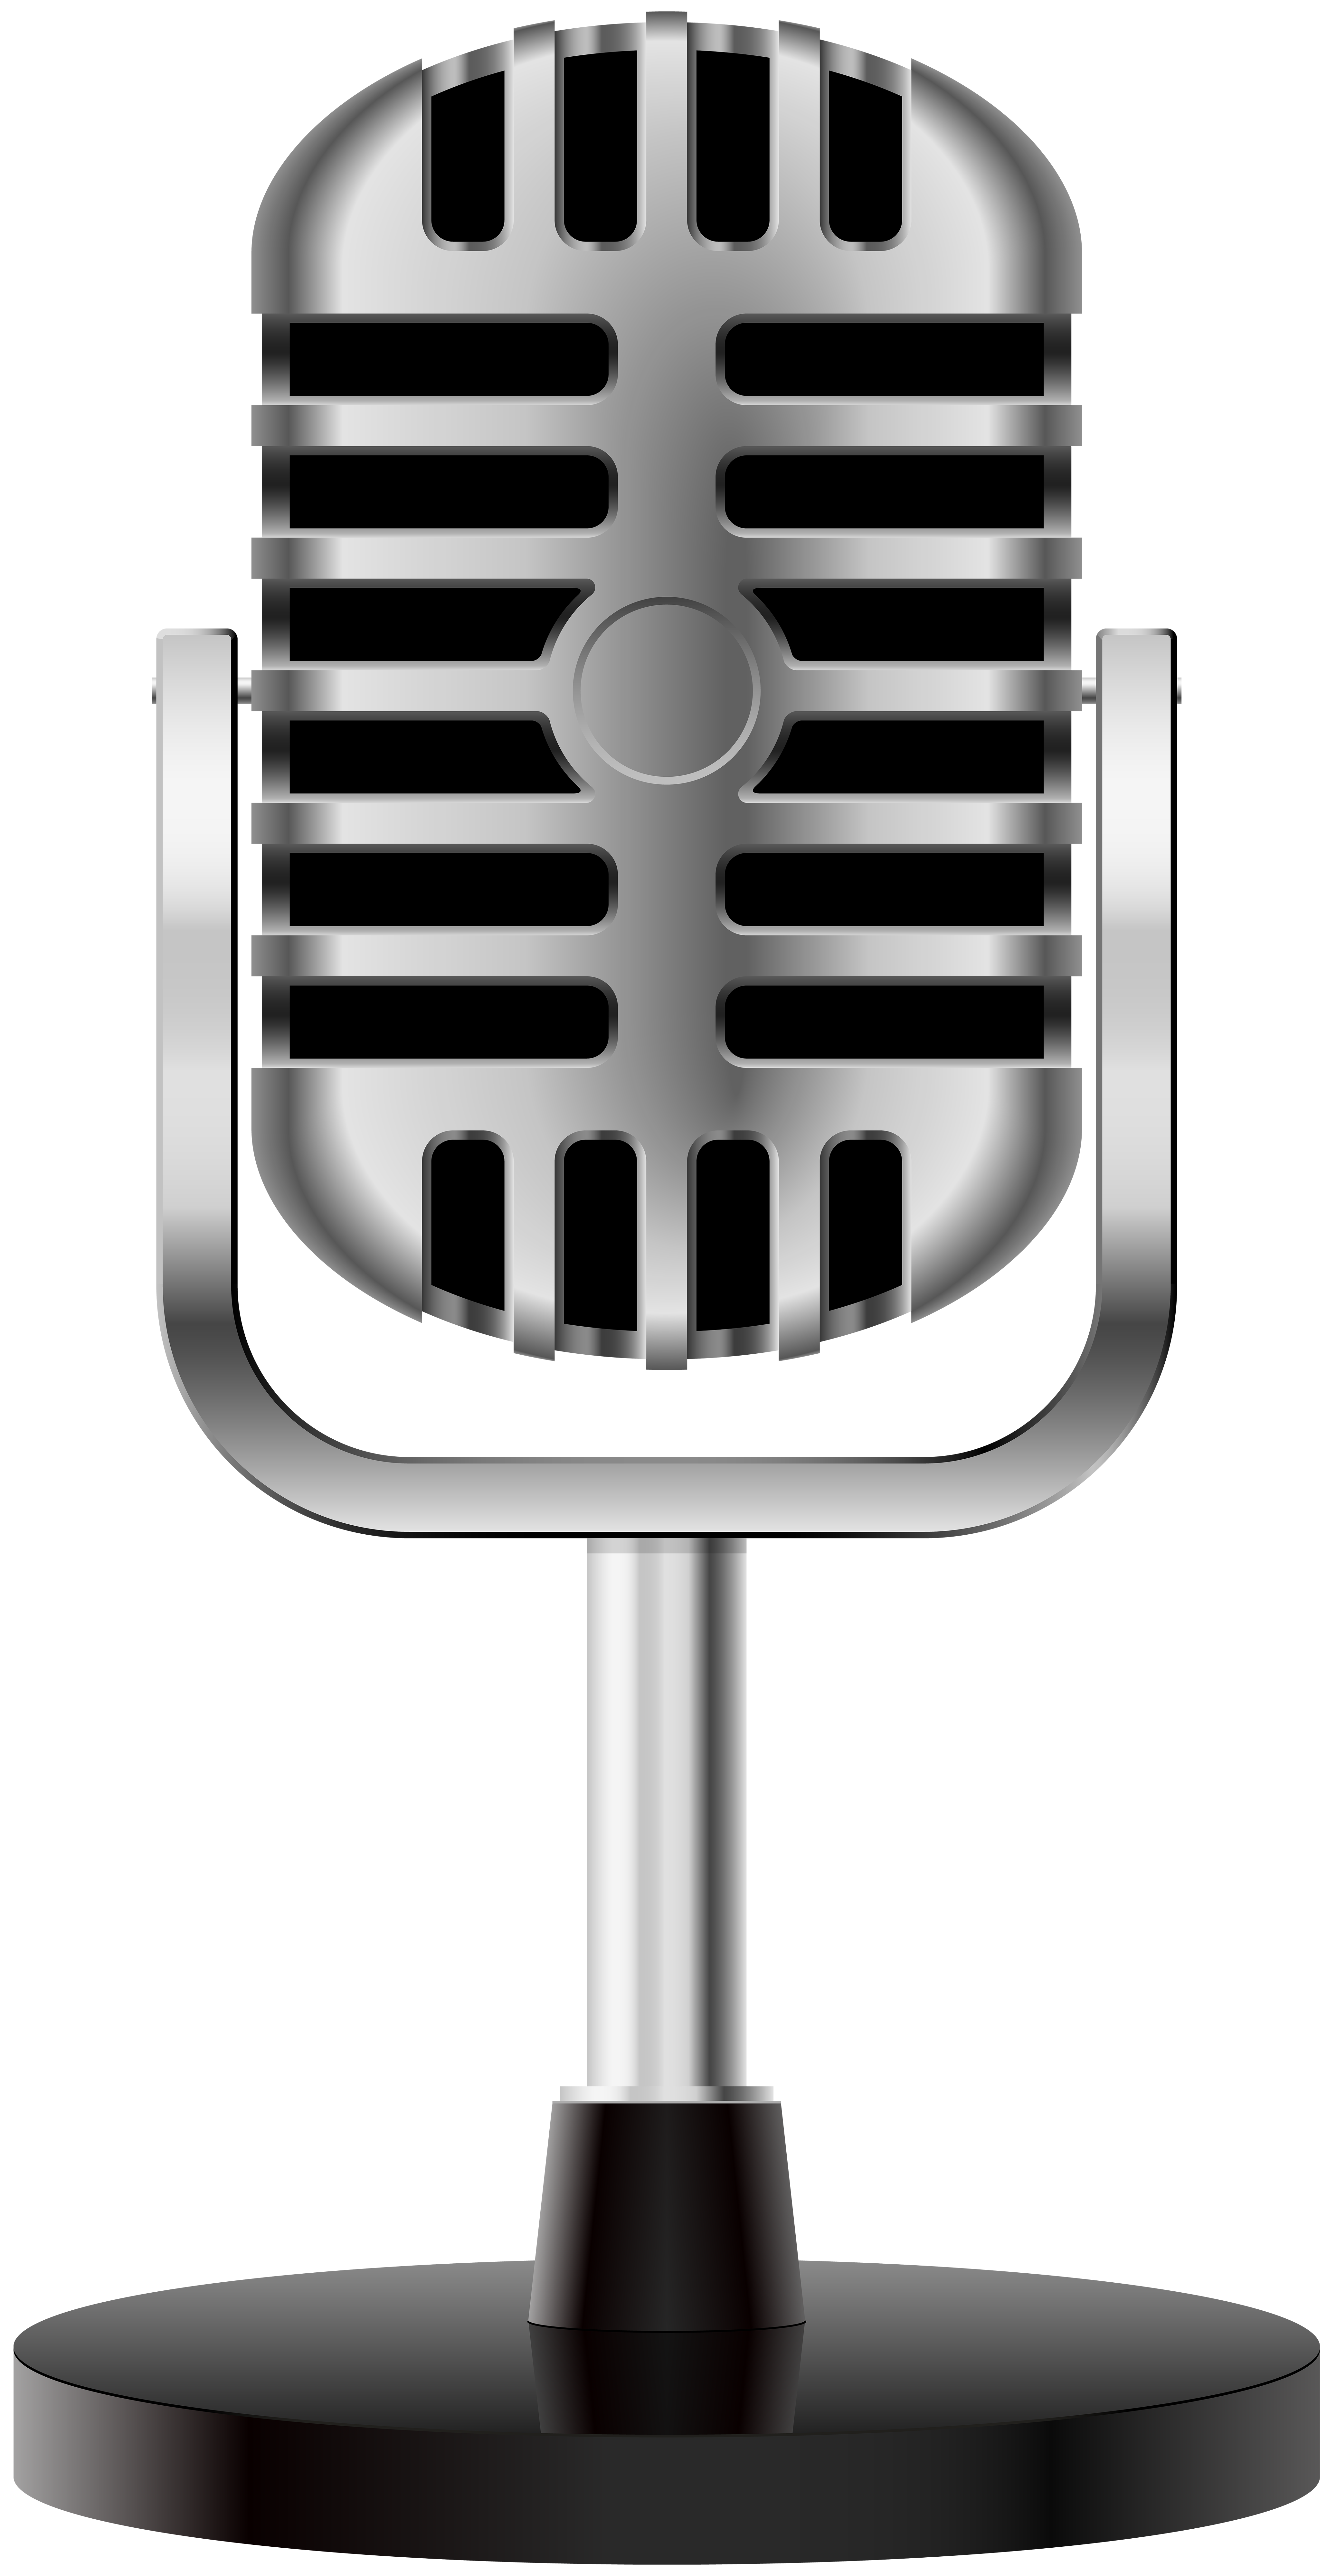 Old fashioned microphone clip art clipart images gallery for.